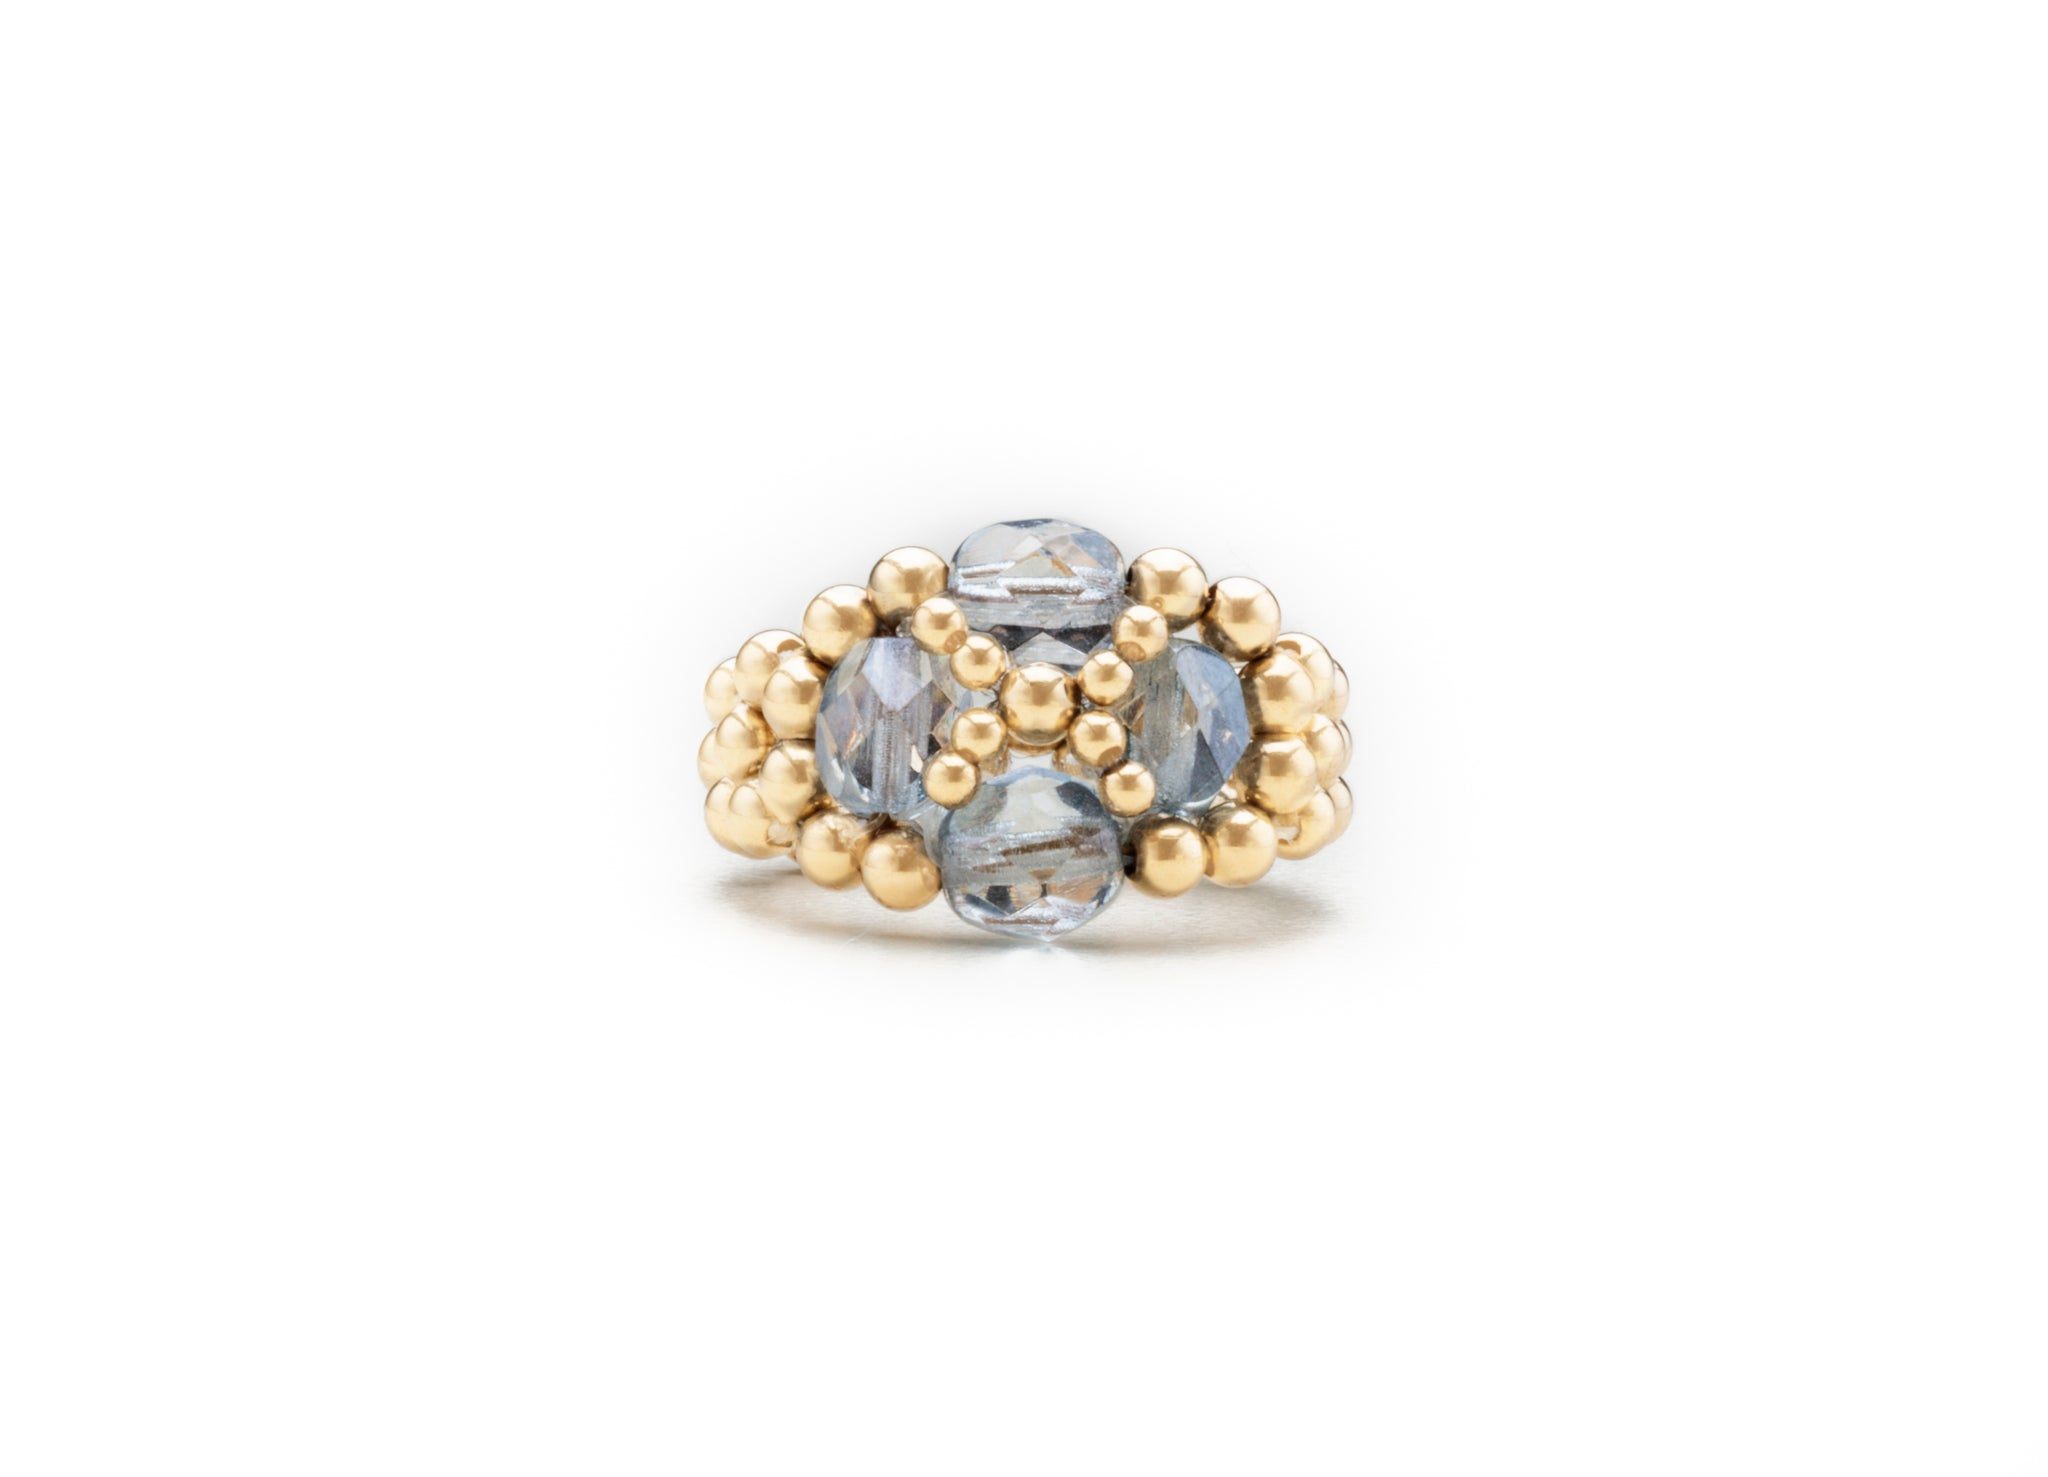 Czech Glass Floret Rings, Gold